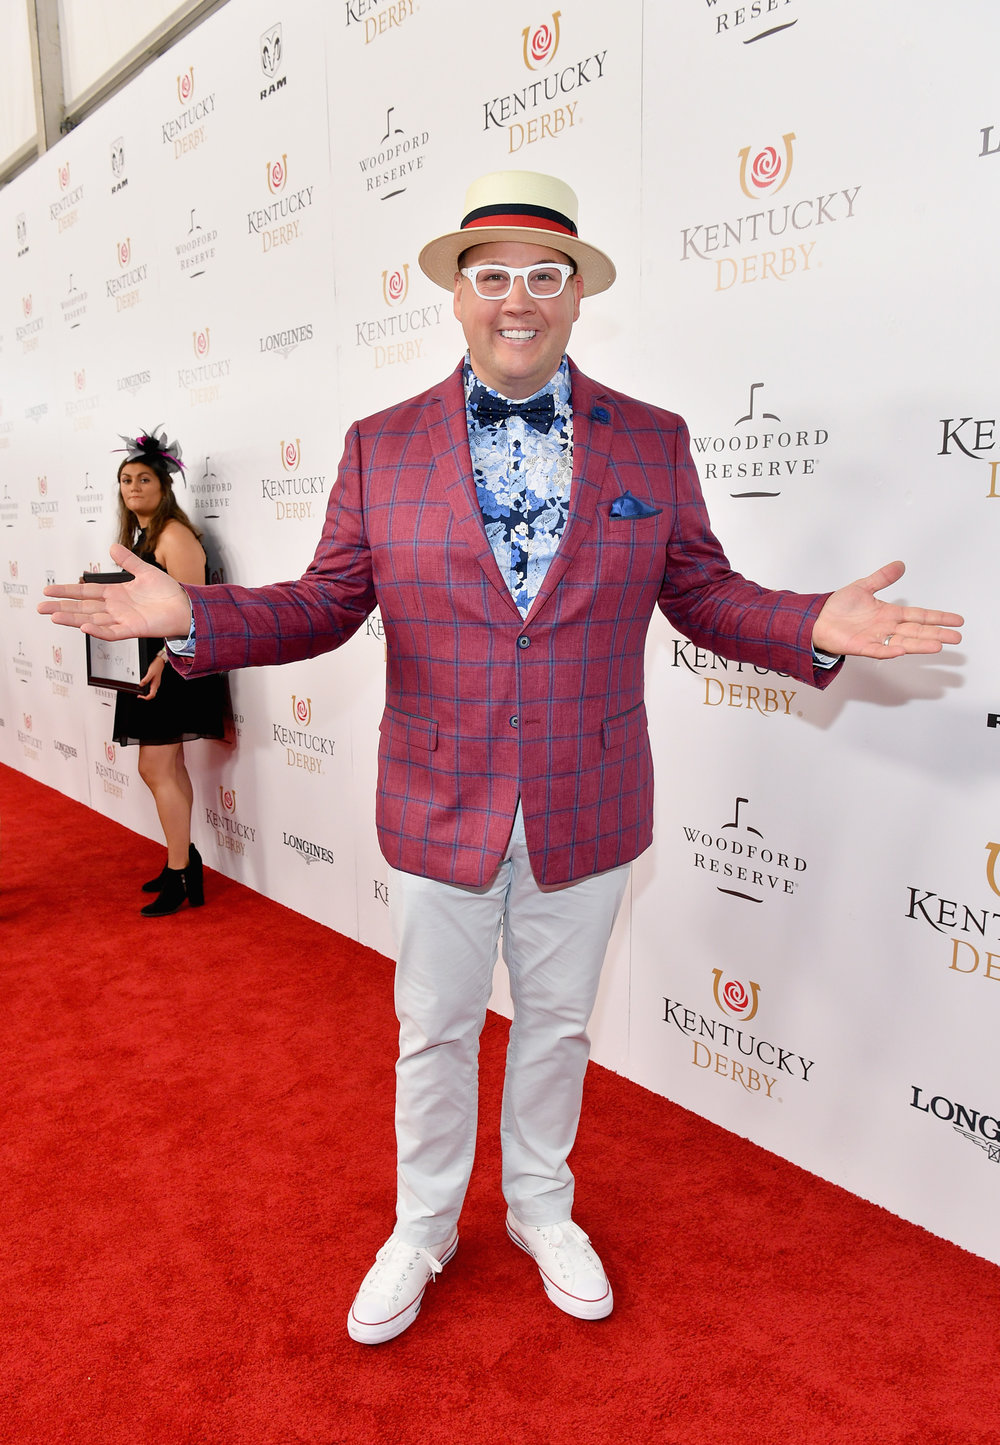 LOUISVILLE, KY - MAY 05:  Chef Graham Elliot attends Kentucky Derby 144 on May 5, 2018 in Louisville, Kentucky.  (Photo by Dia Dipasupil/Getty Images for Chruchill Downs) *** Local Caption *** Graham Elliot